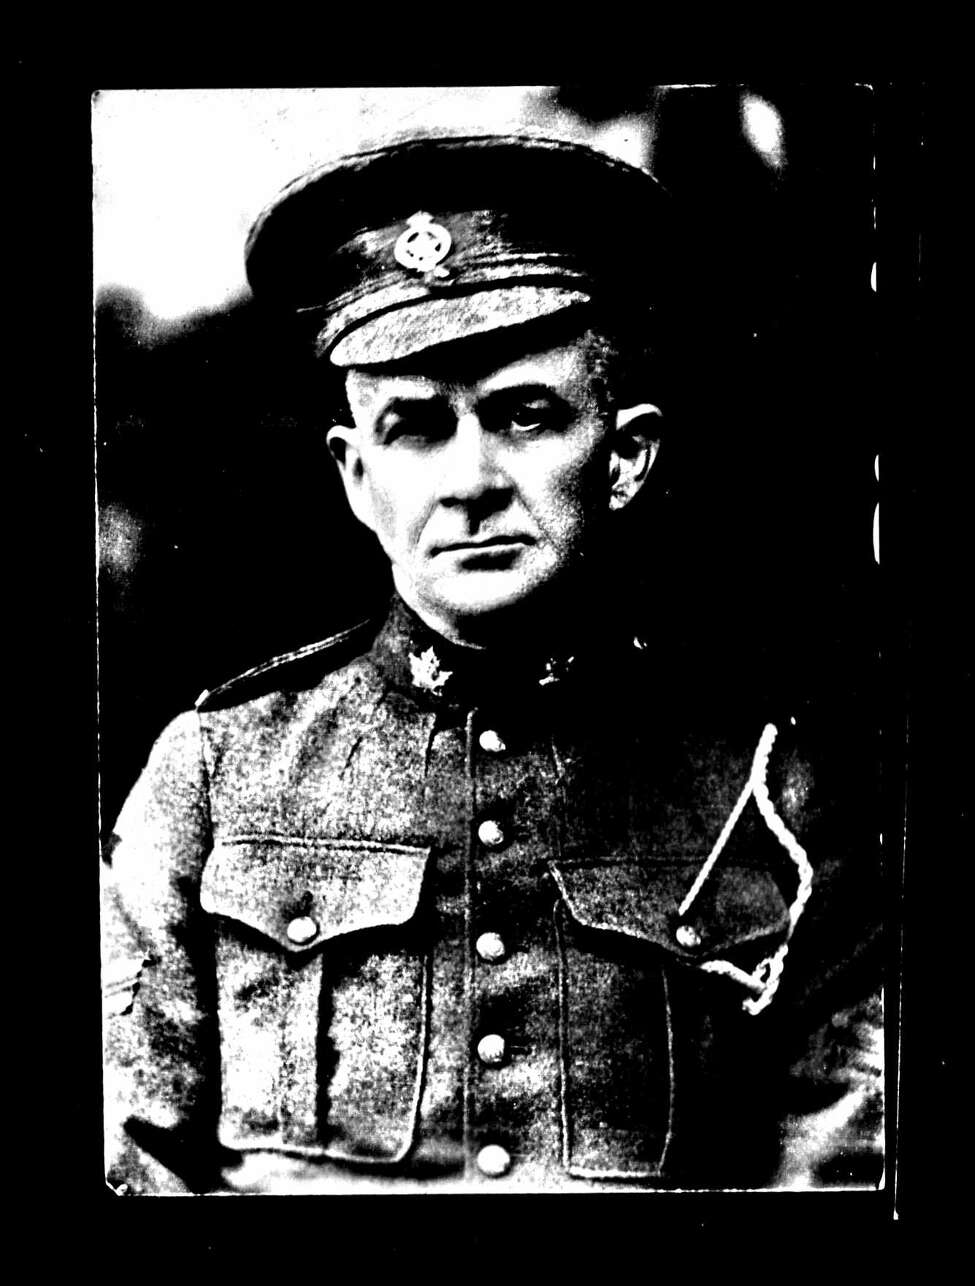 Arthur Wellington of Troy joined the Canadian forces in World War I after his son Burton's death. He was the oldest Troy resident to enlist, according to archival records. He survived the war. (New York State Archives)